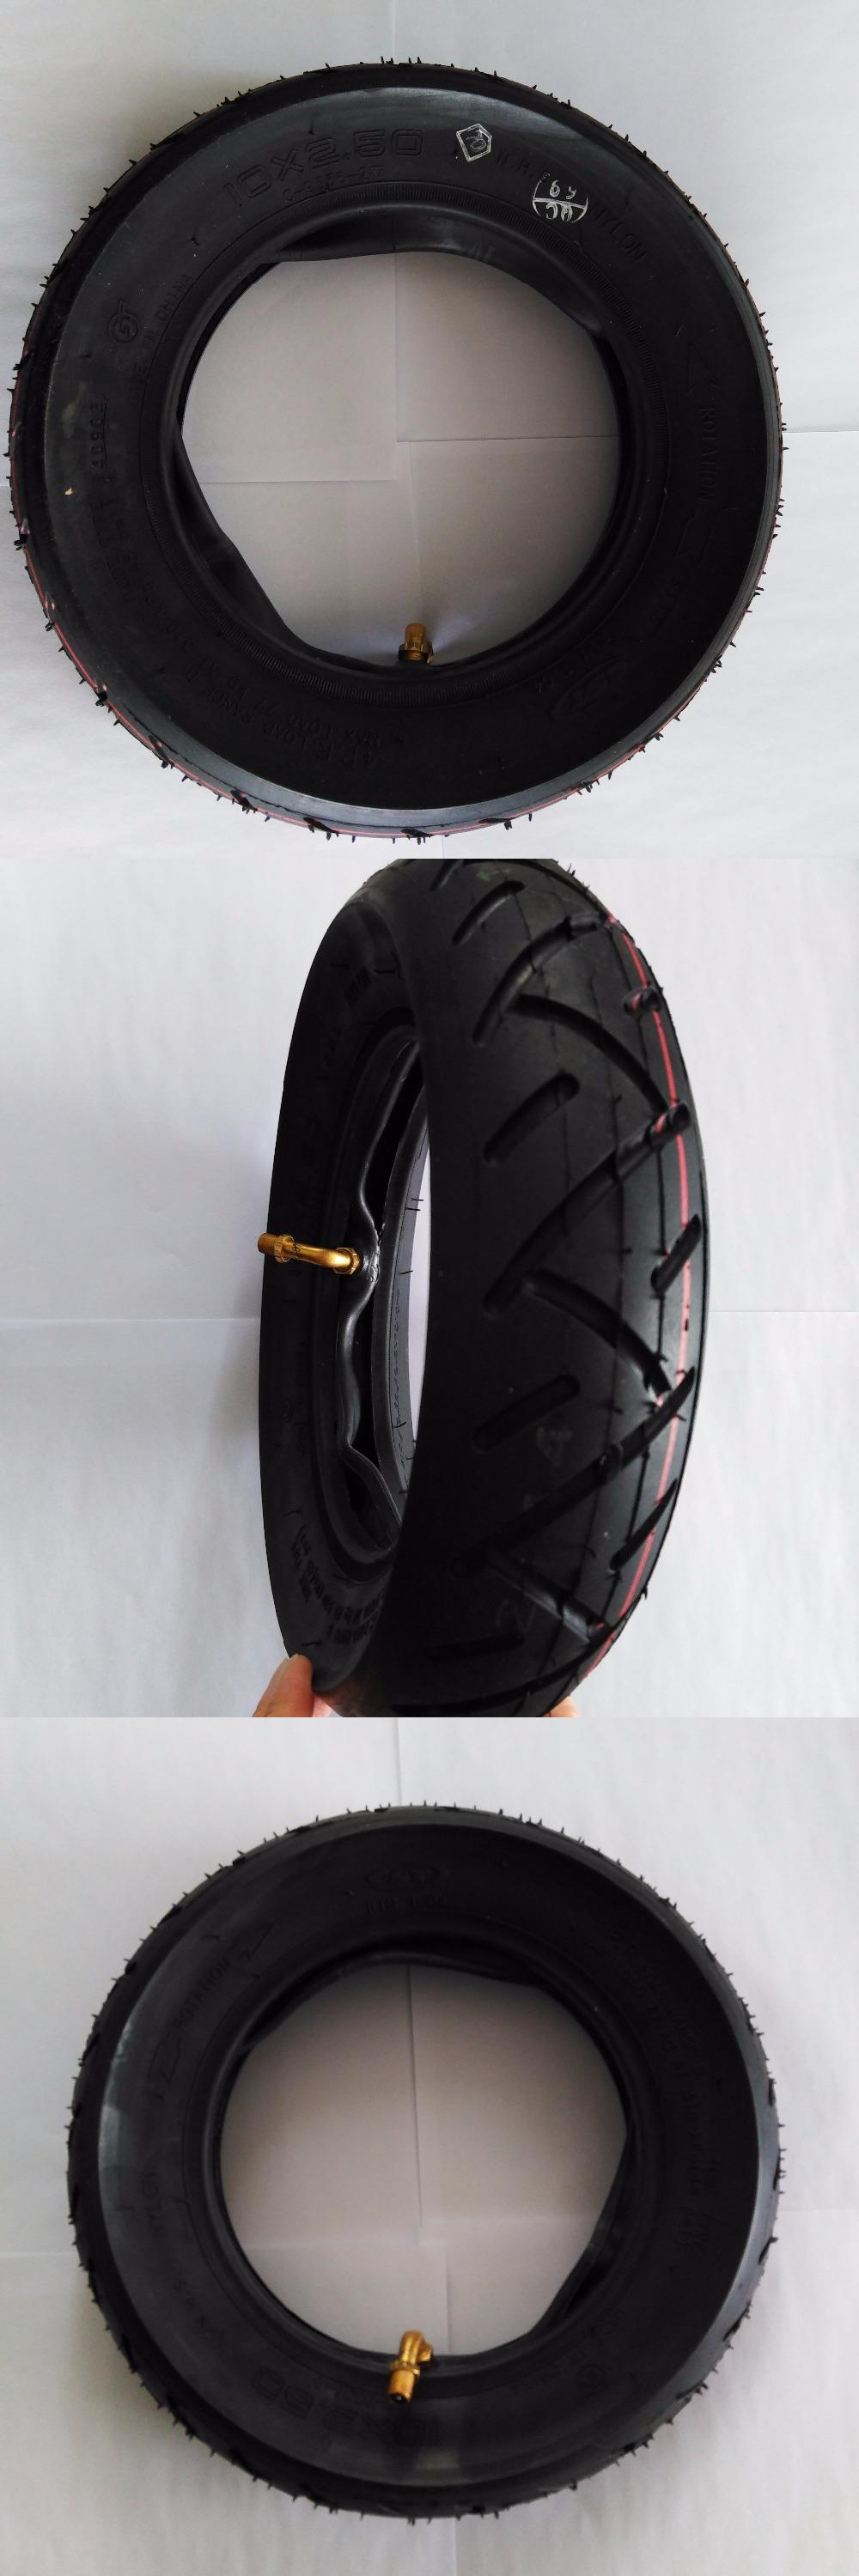 Visit To Buy 10 Inch Pneumatic Tire For Electric Scooter Dualtron Circuit Boardsell Boardsuppliers Boardcircuit And Speedway 3